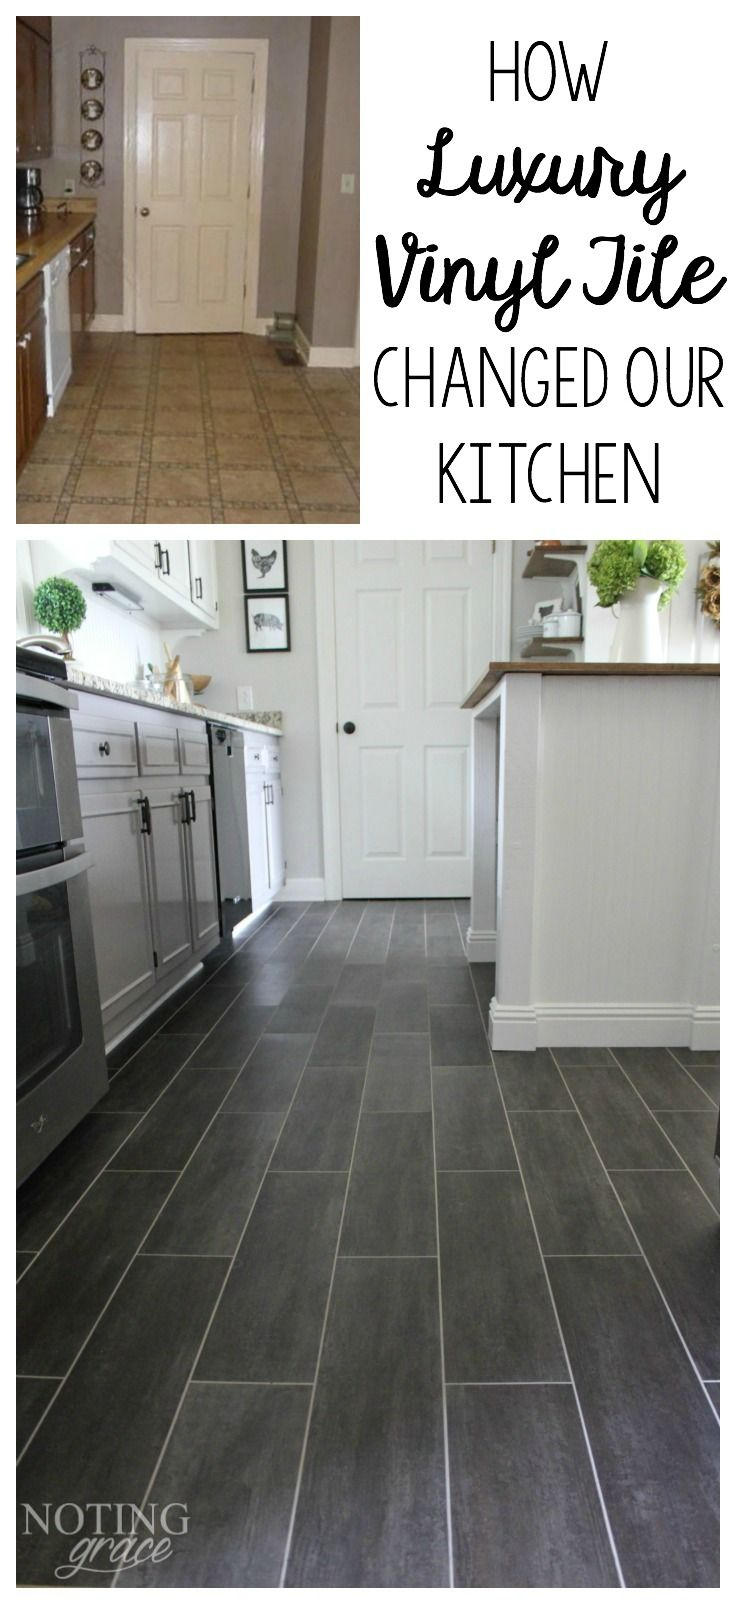 Diy kitchen flooring luxury vinyl tile vinyl tiles and for Vinyl floor ideas for kitchen